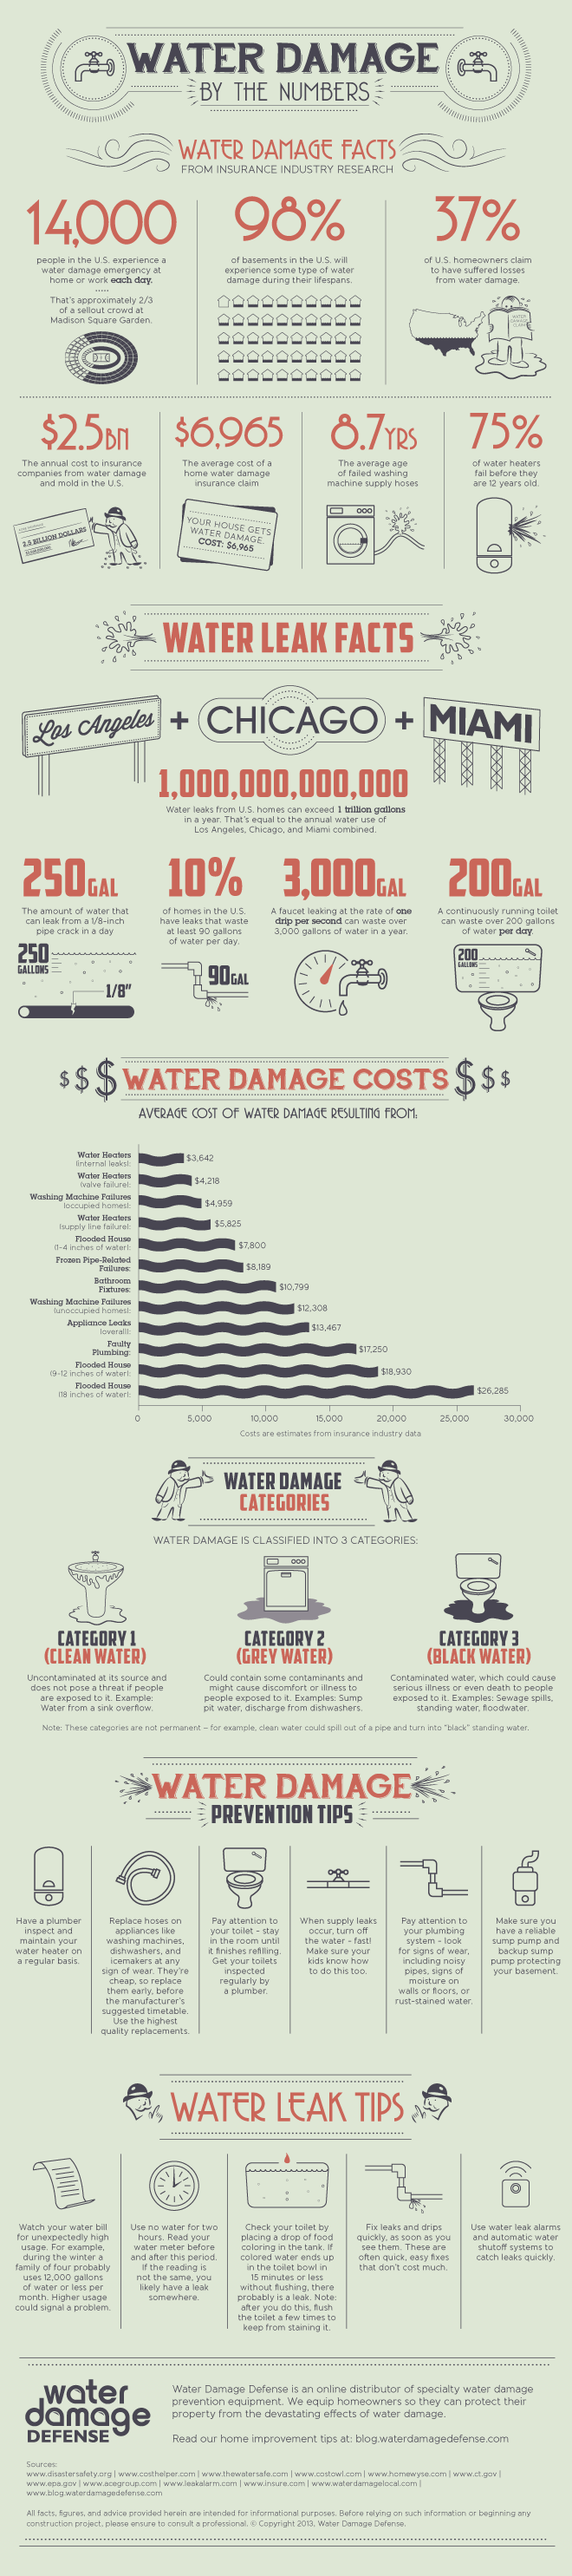 WDD002-Home-Water-Damage_E